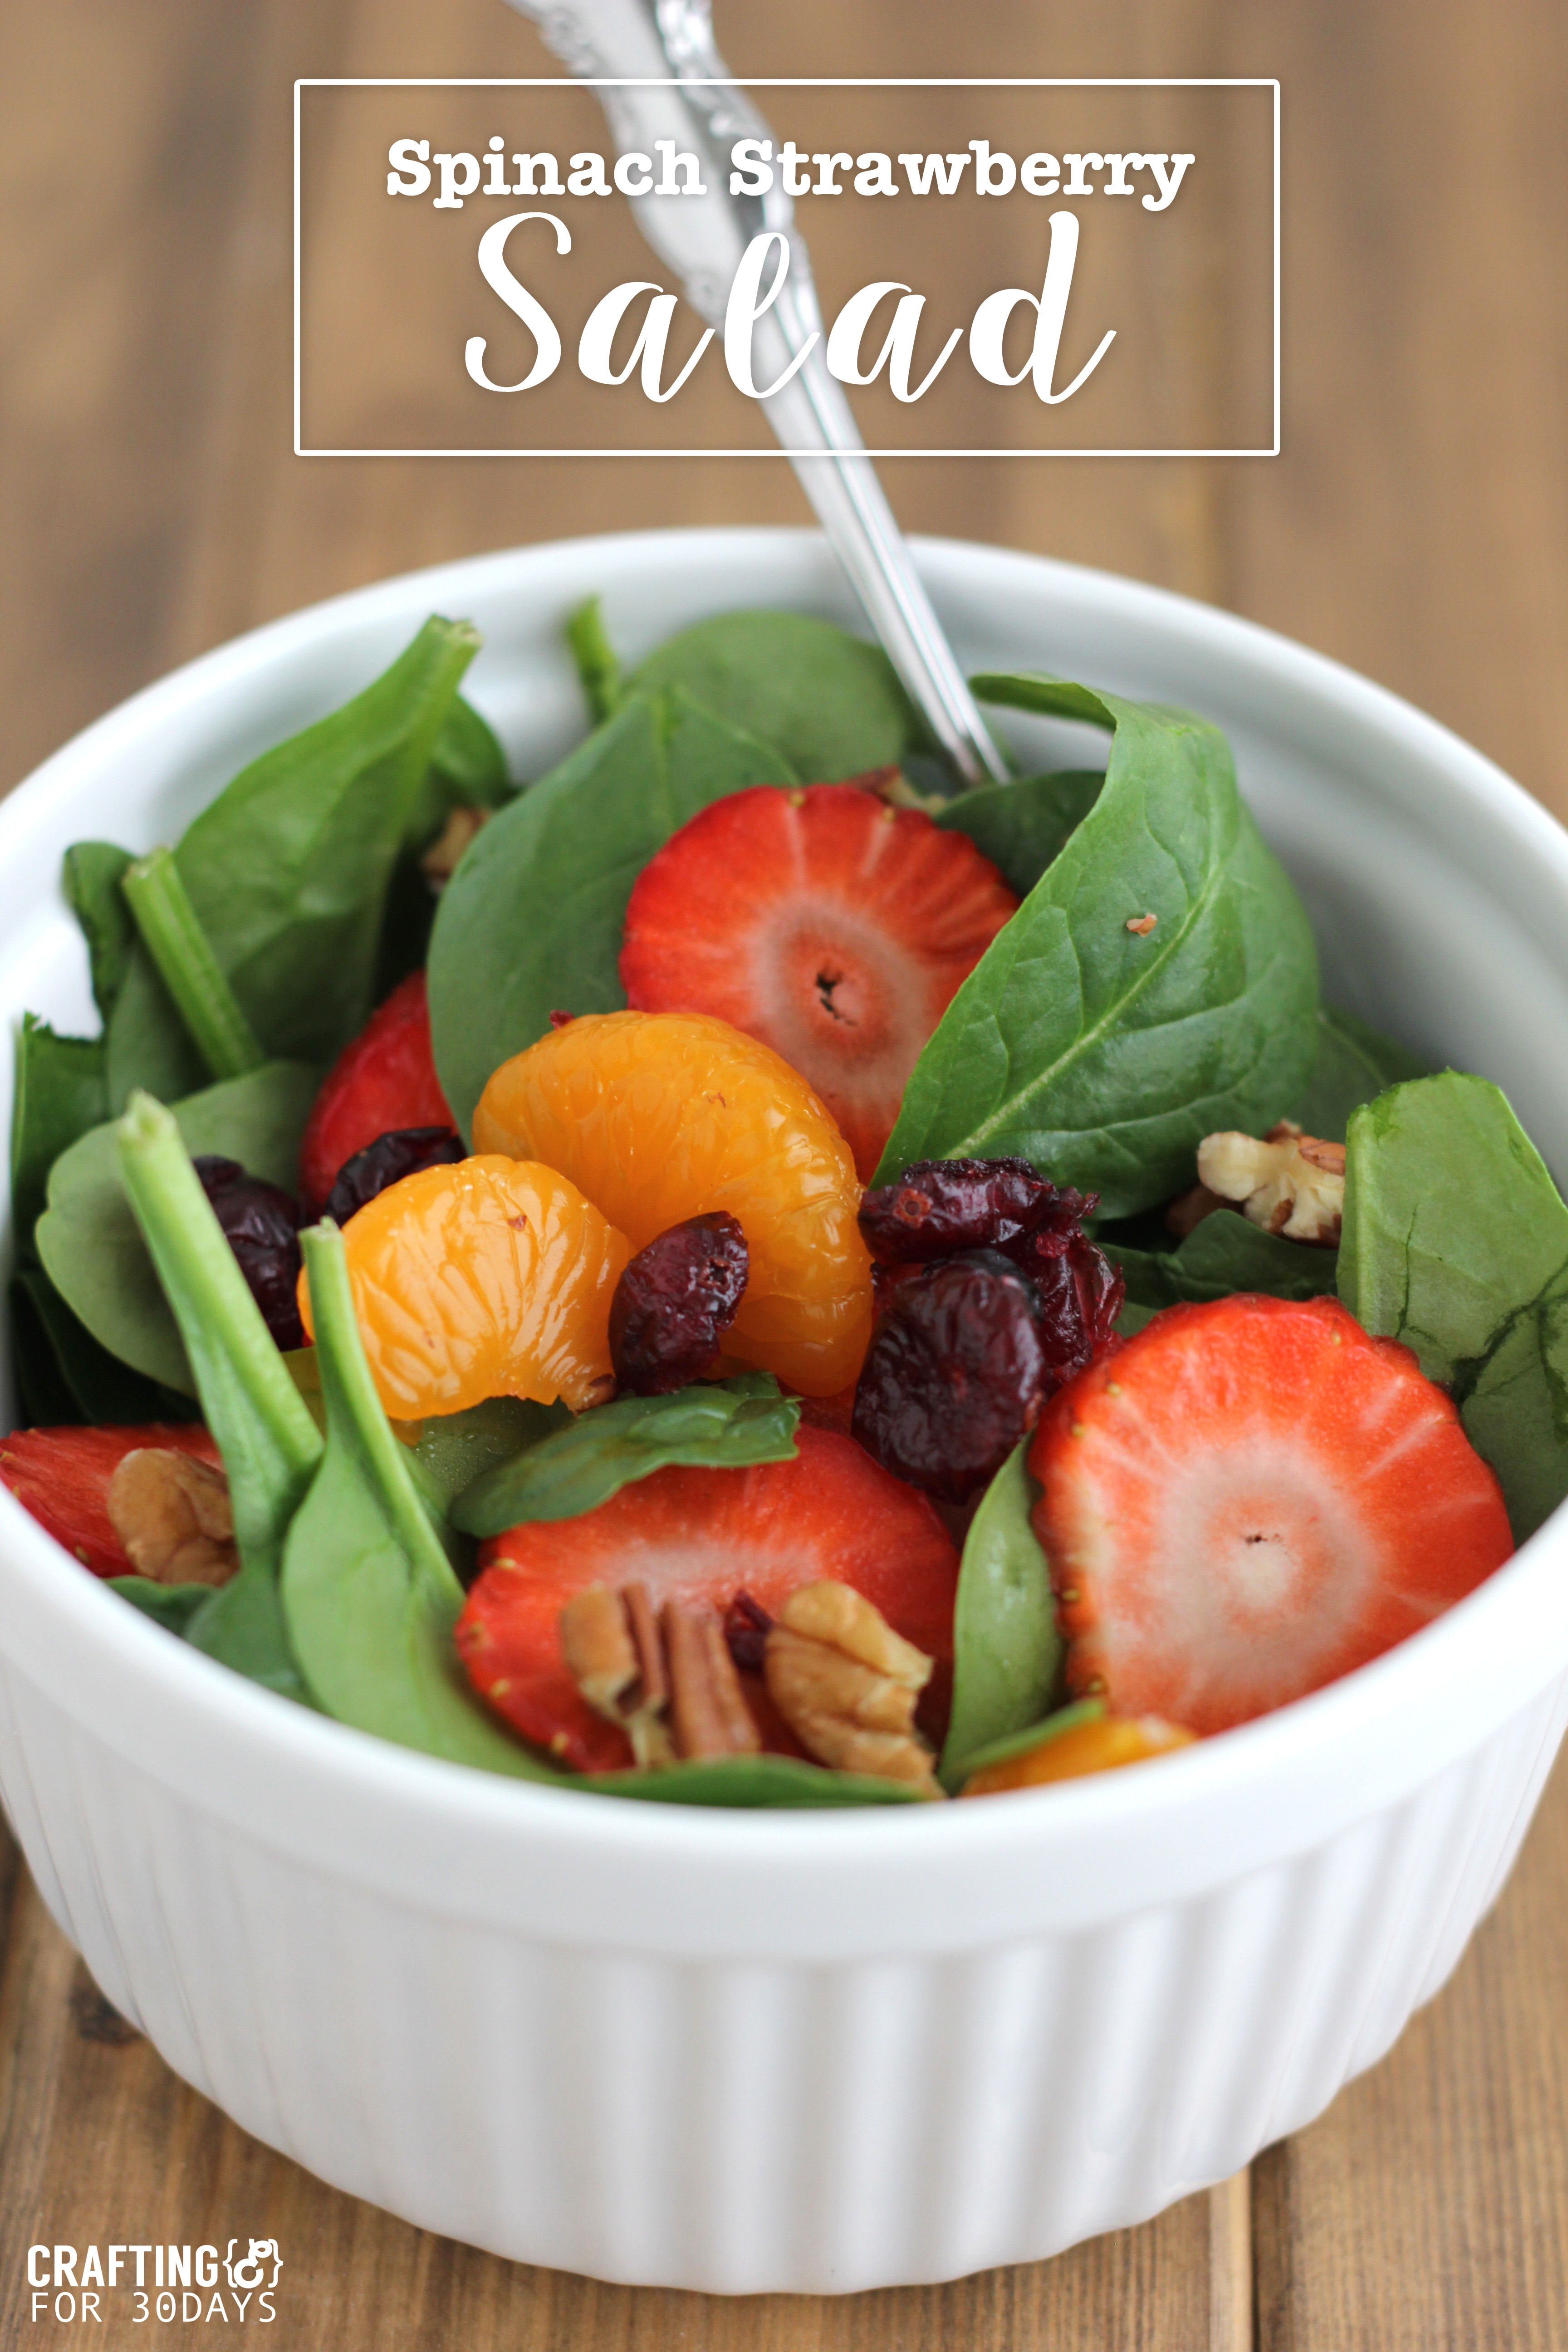 Spinach Strawberry Salad- an awesomely delicious and healthy option for the new year! From CraftingE